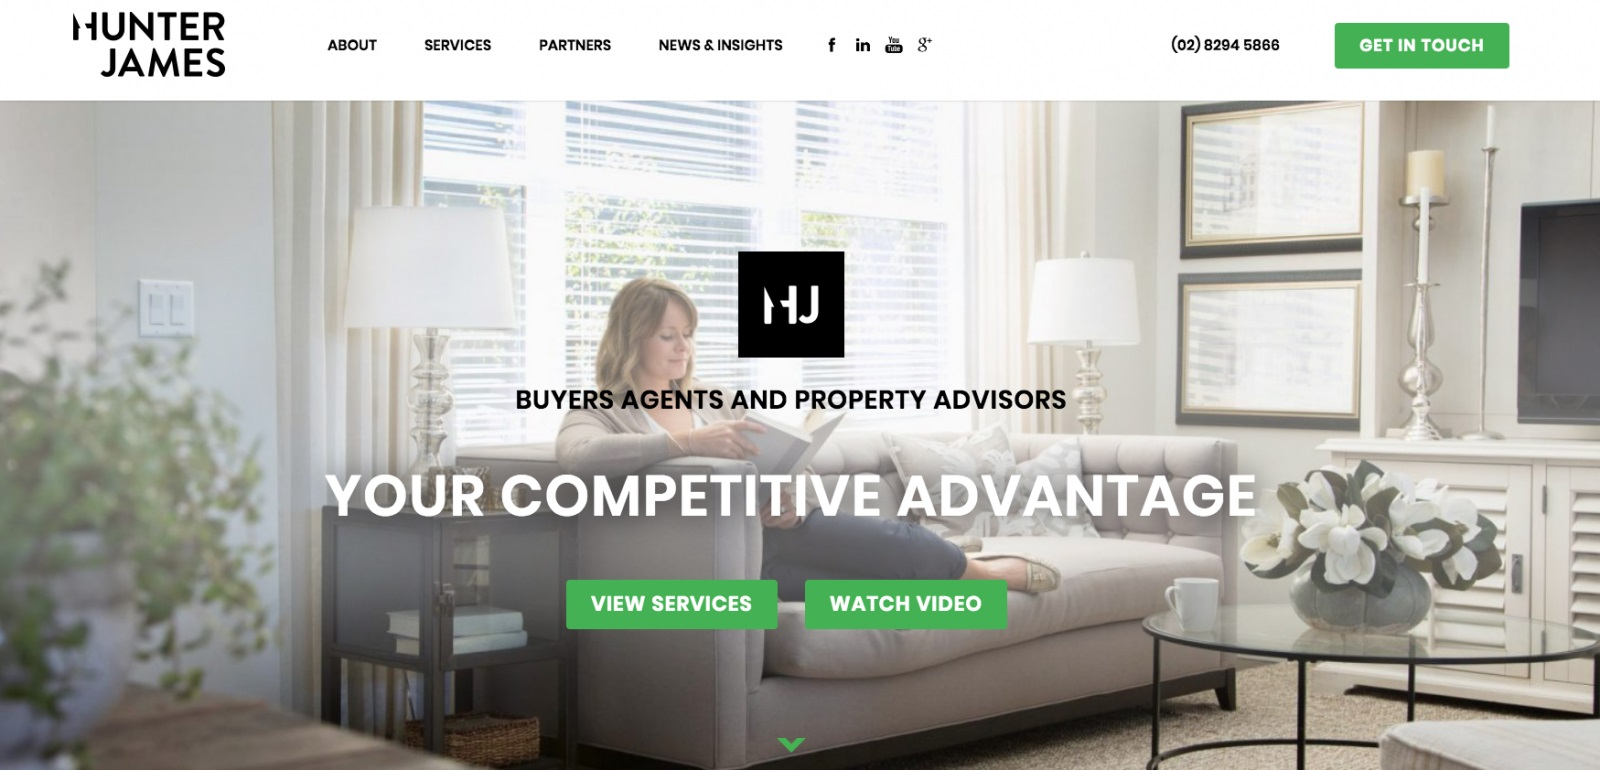 Web design for Hunter James